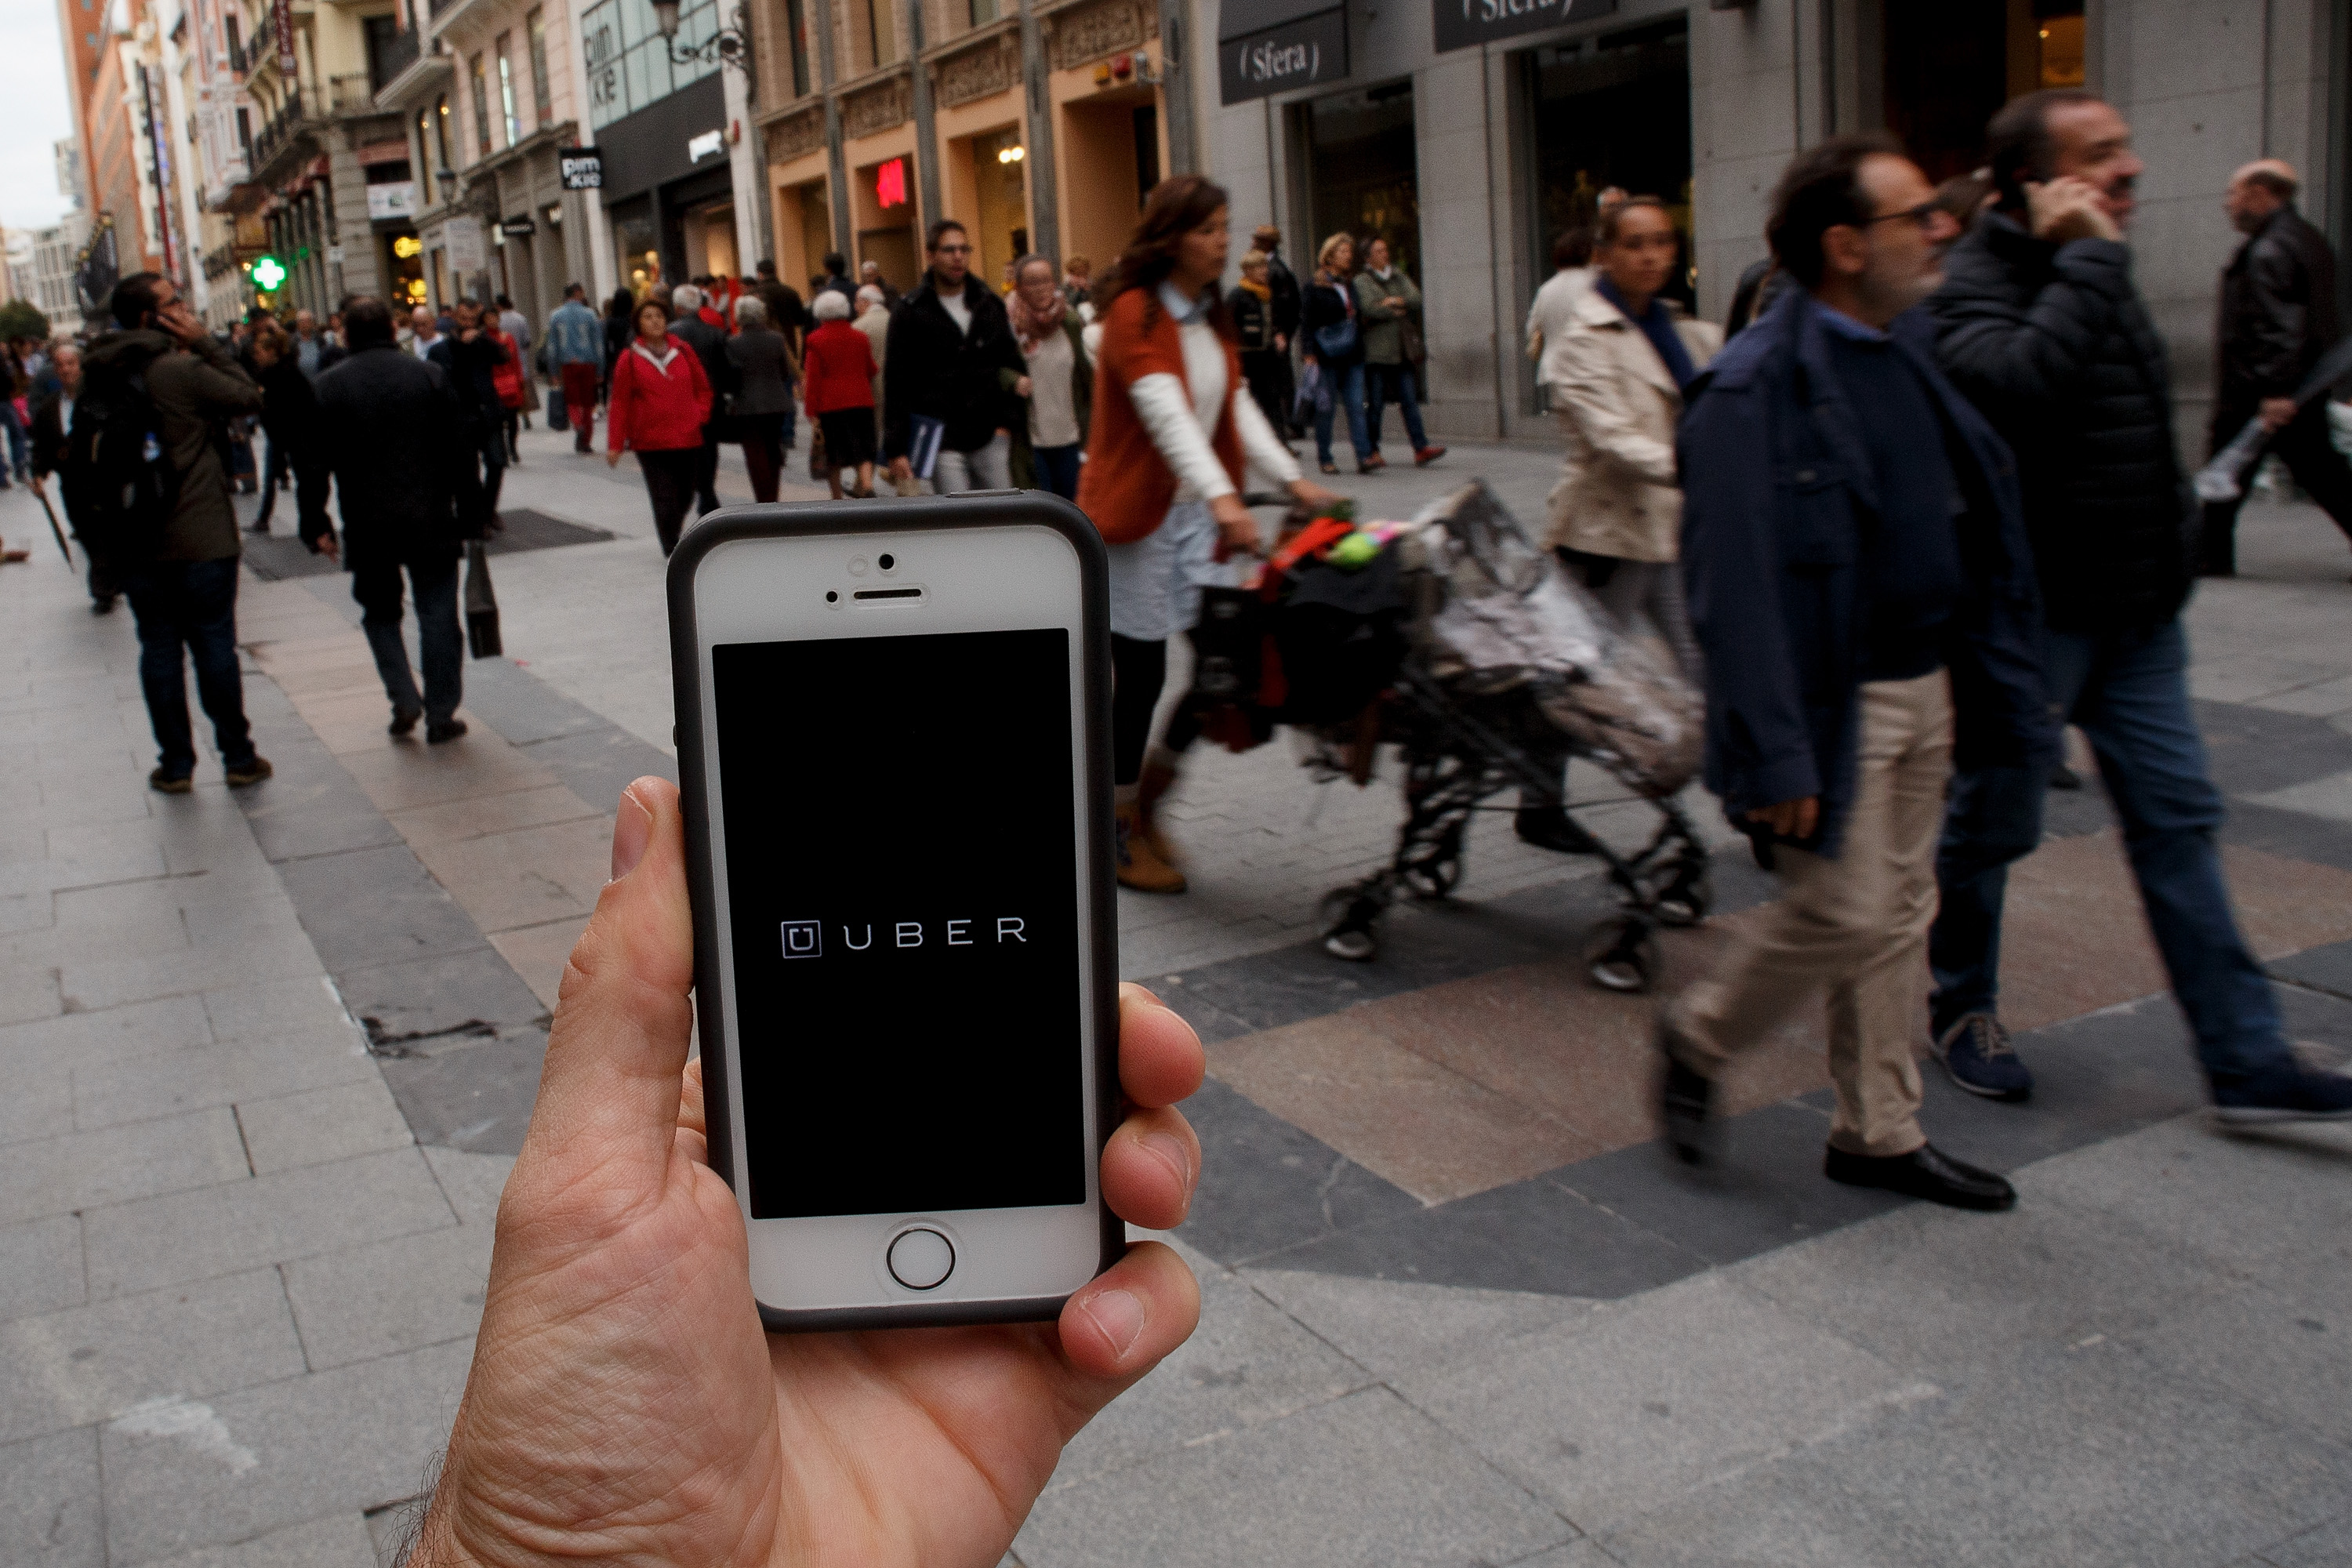 Would You Uber an Online Shopping Purchase?